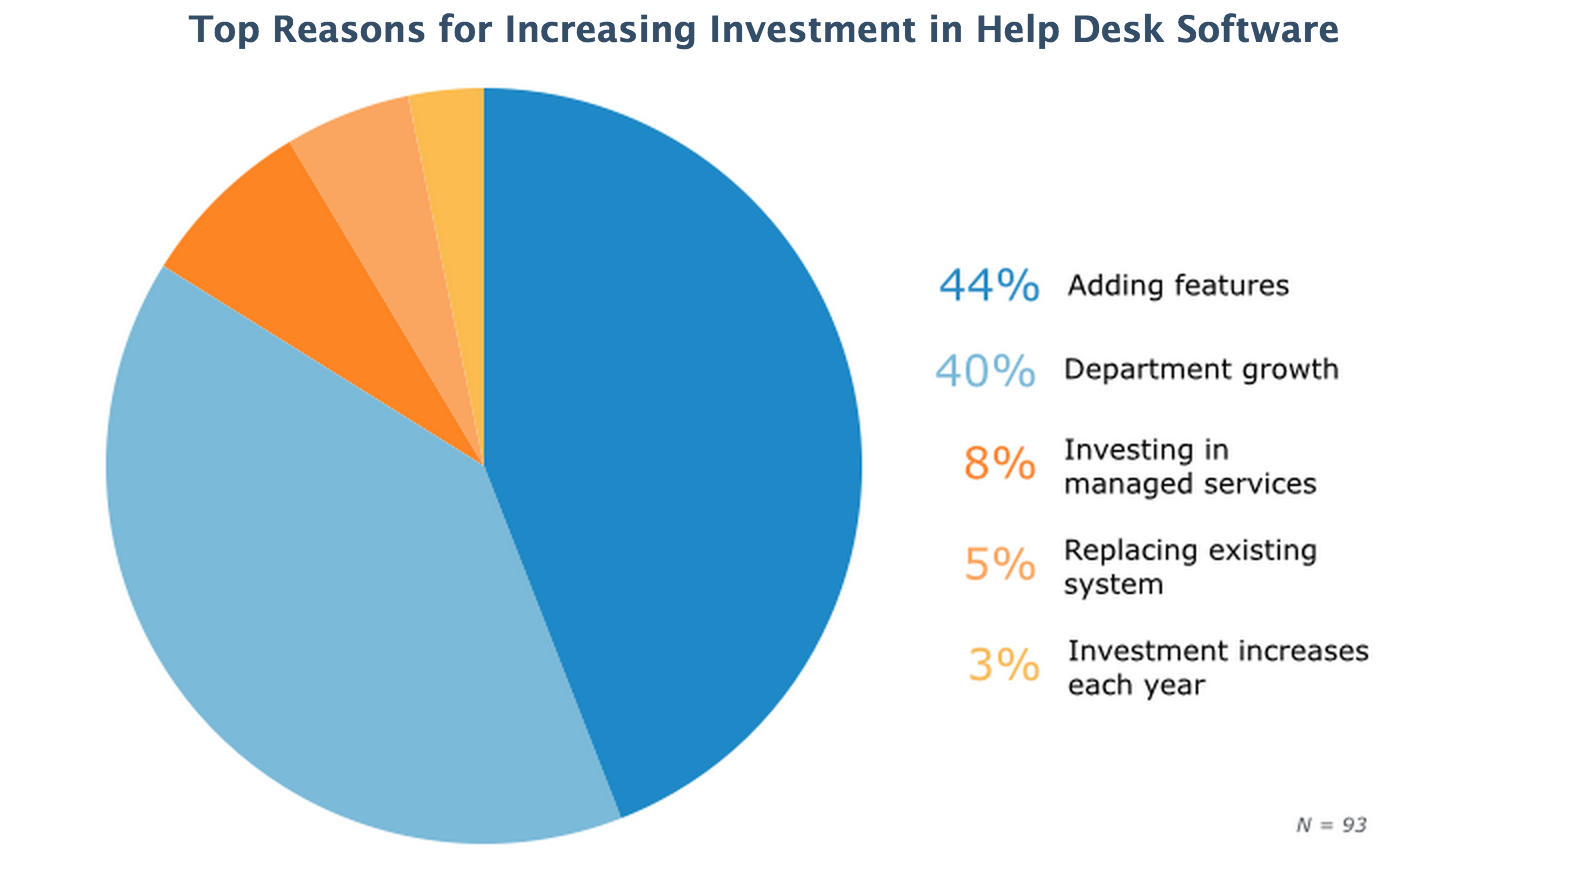 circle diagram showing top reasons for increasing investment in help desk software